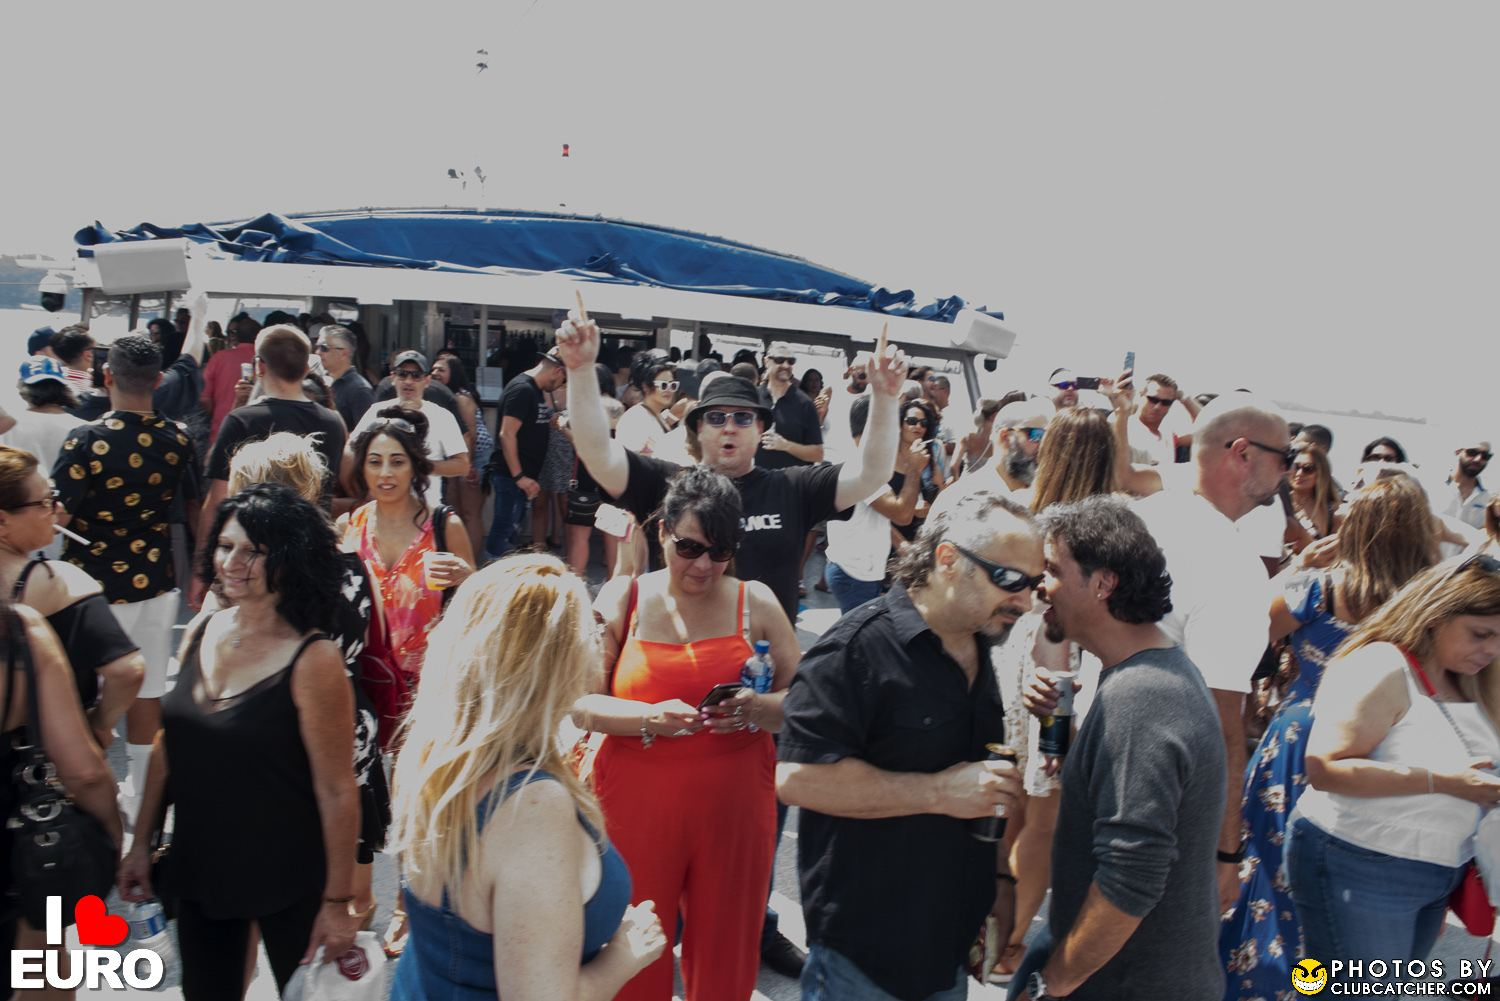 Empress Of Canada party venue photo 75 - August 22nd, 2021